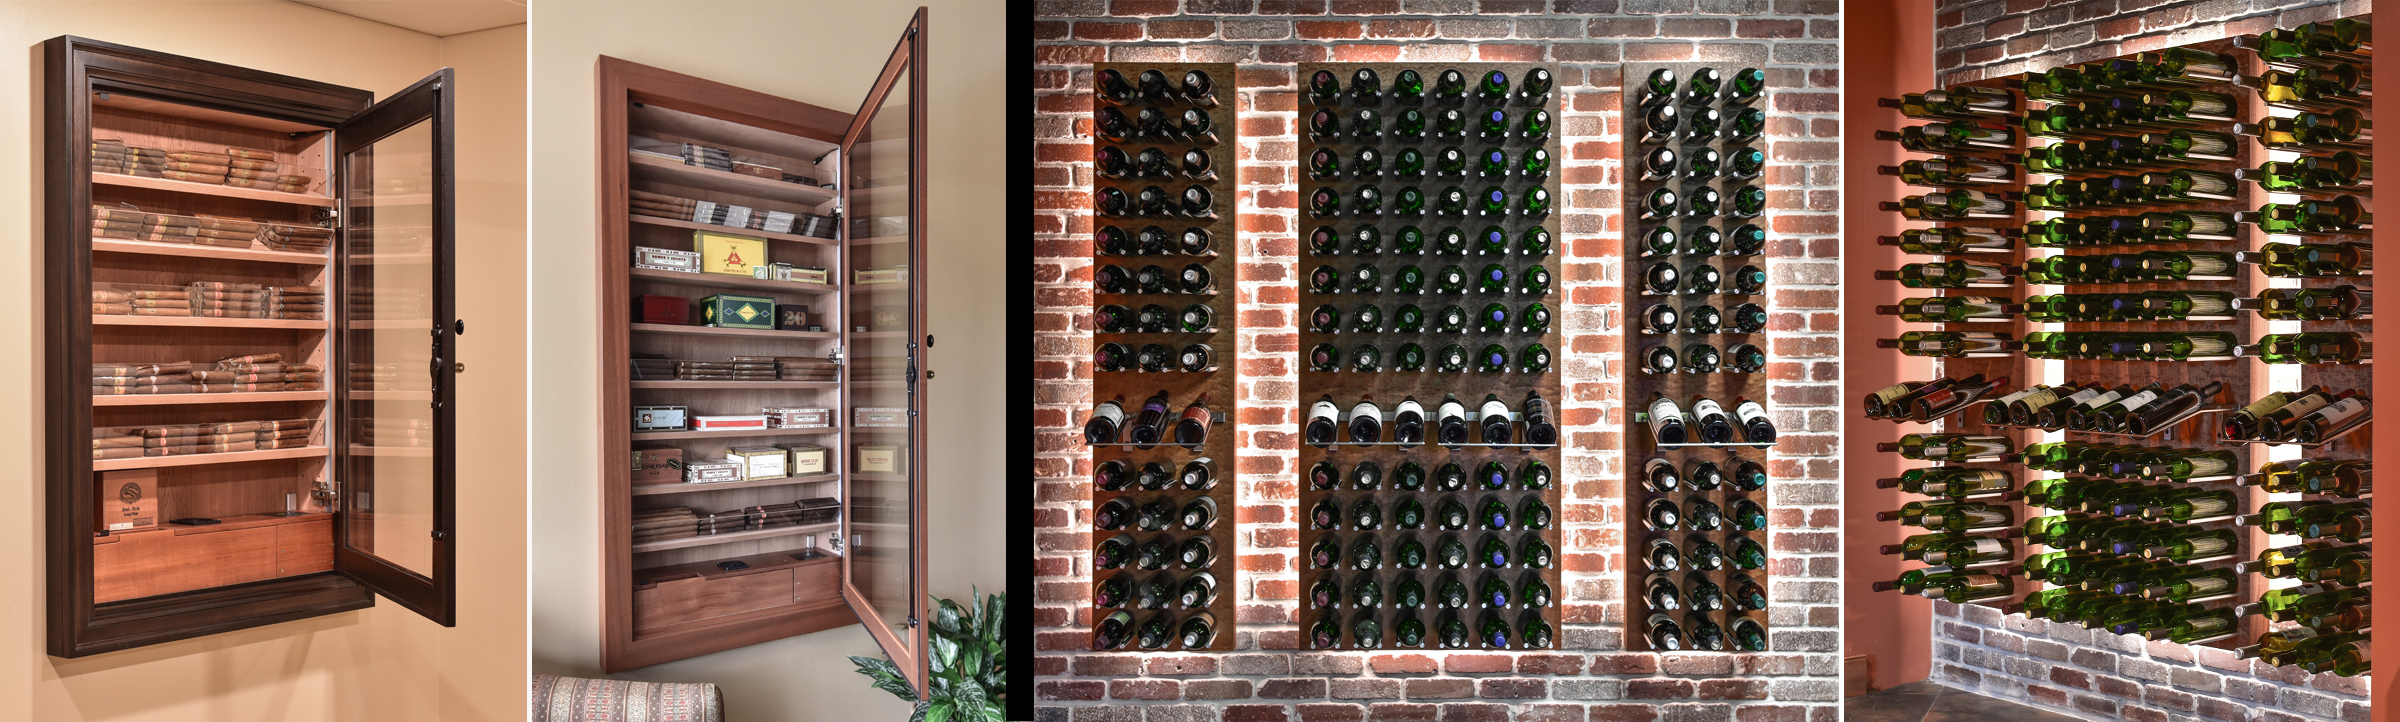 E Saving Wine Wall Built In